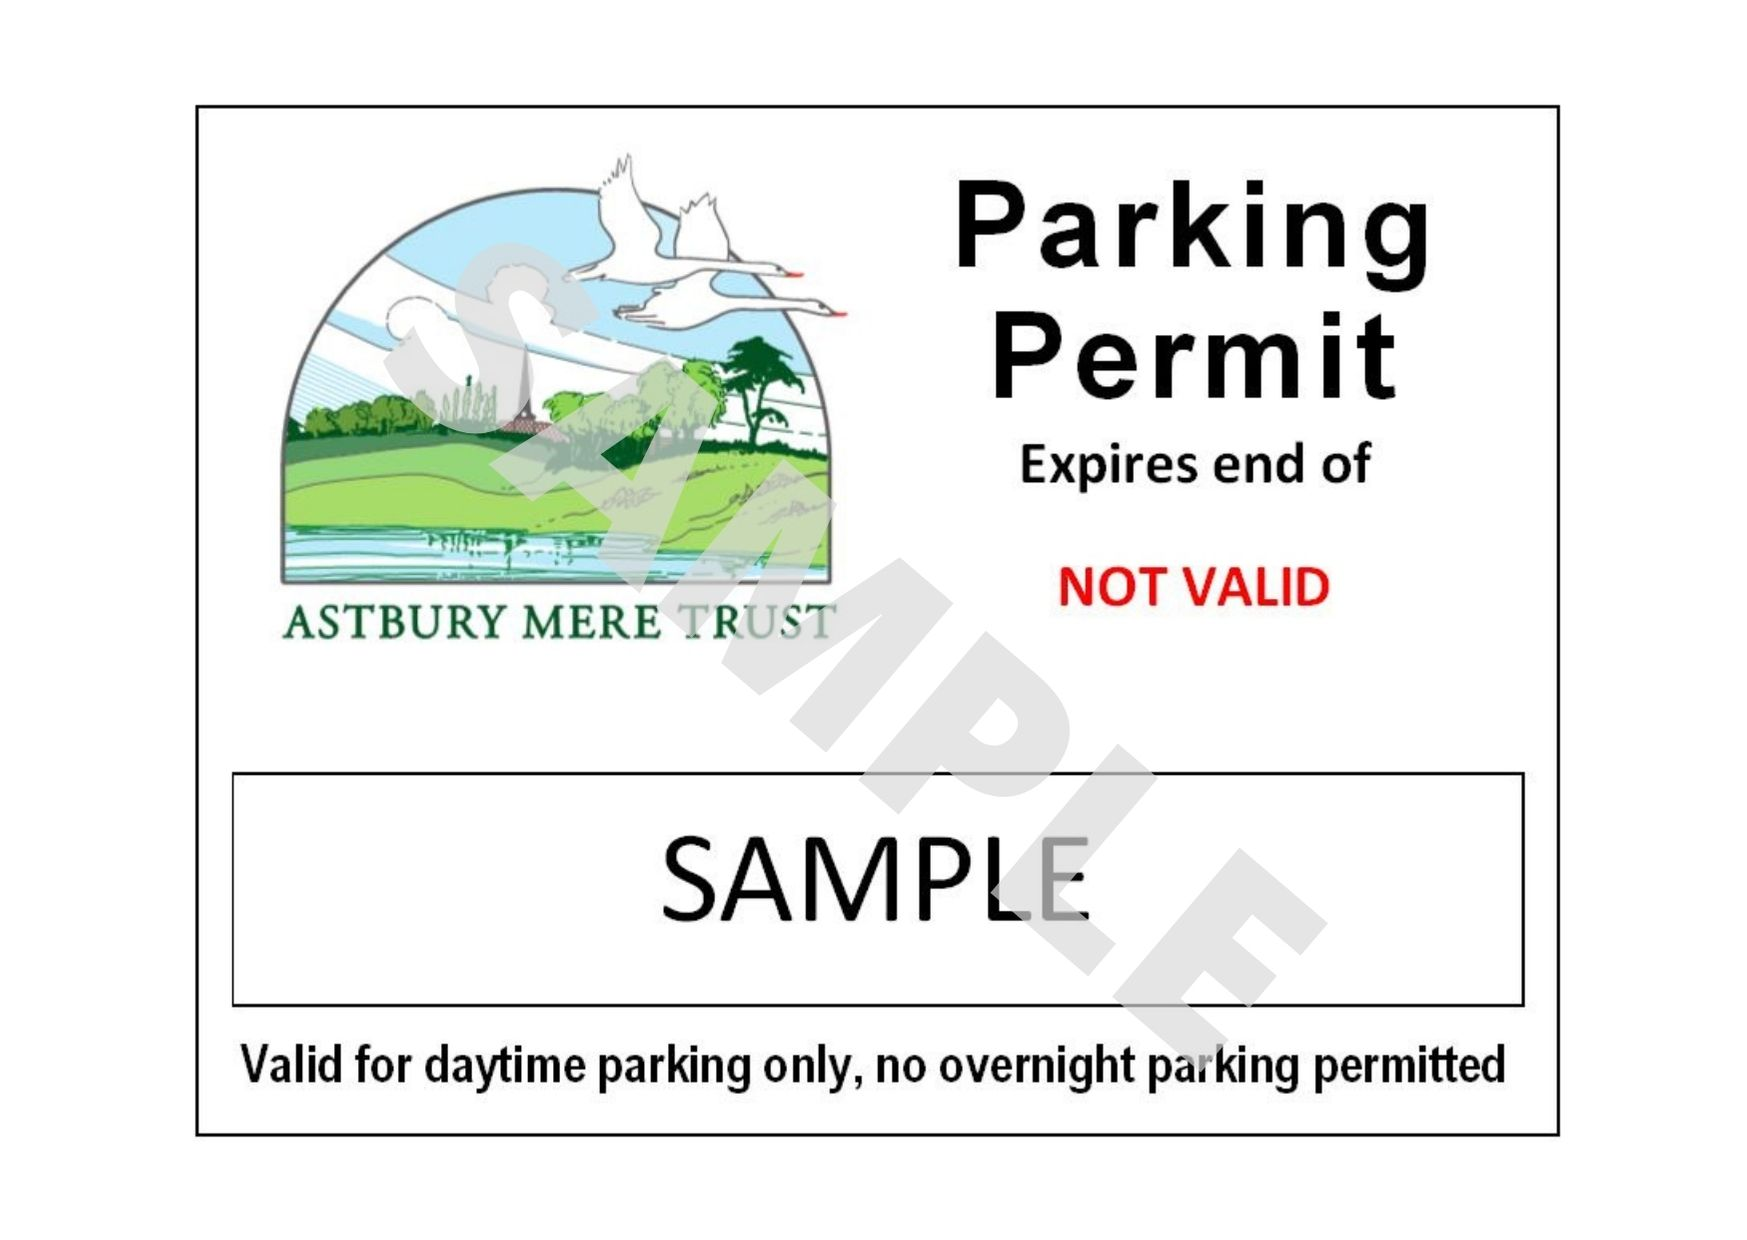 Sample Parking Permit